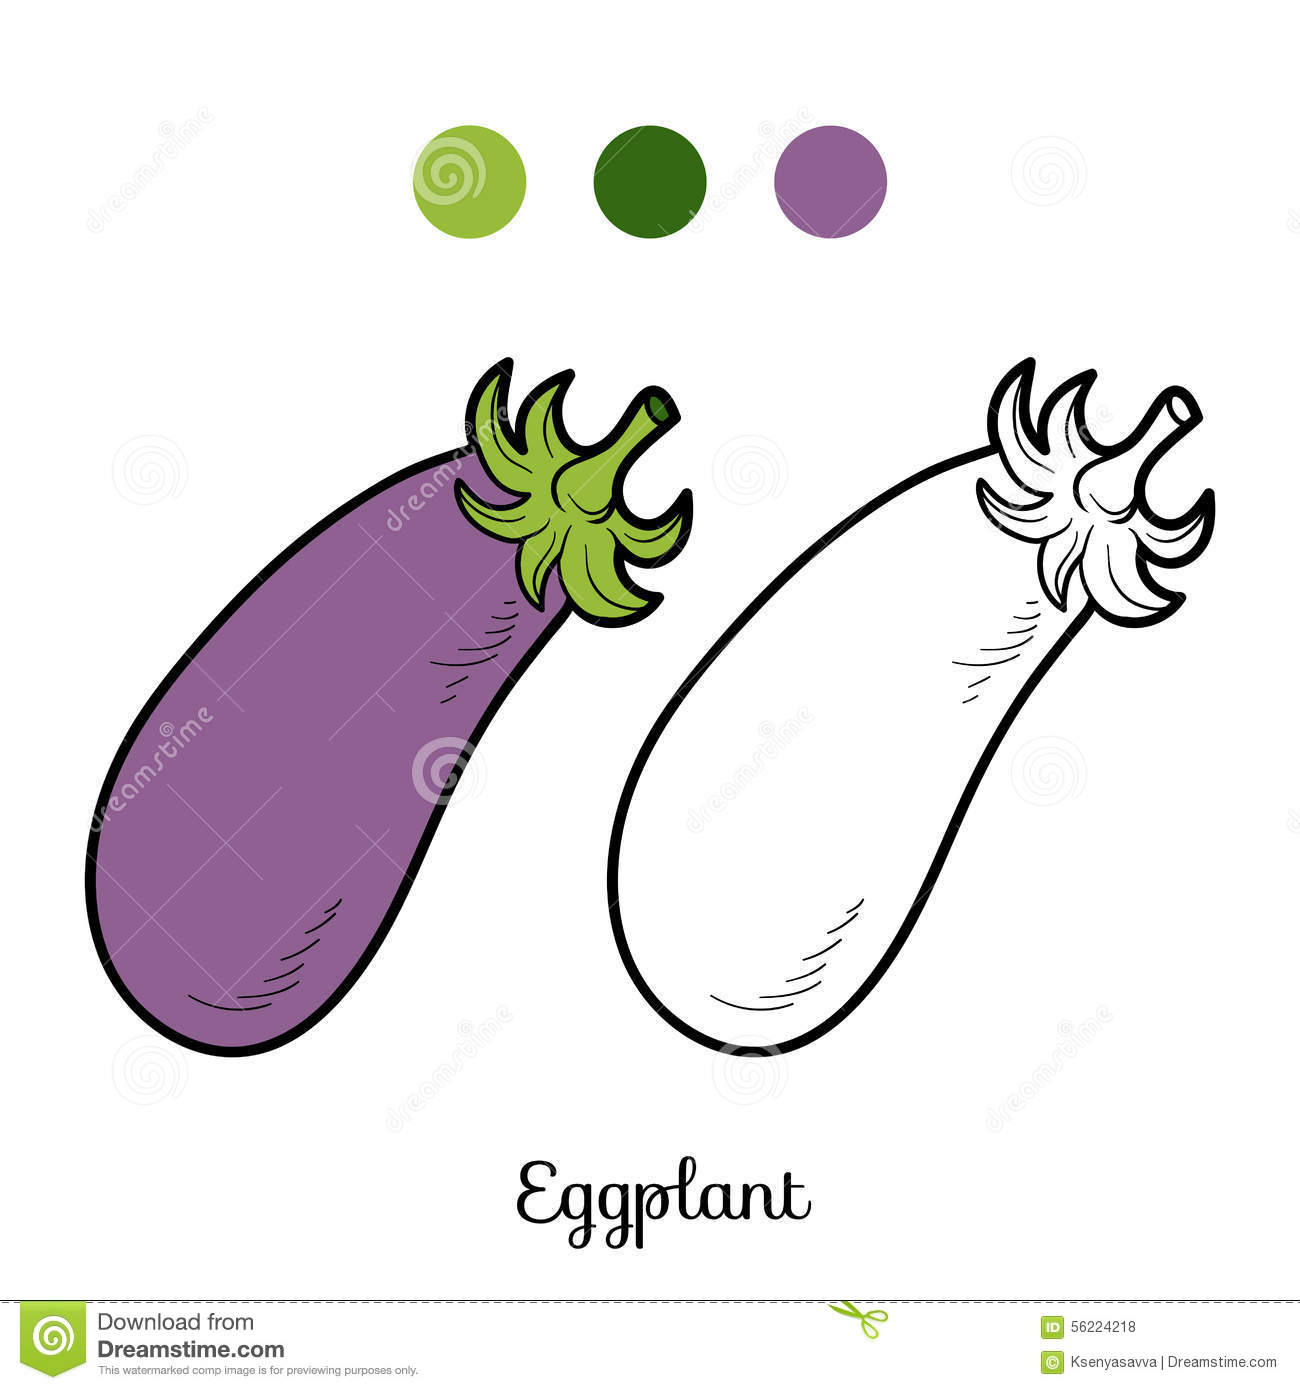 Coloring book pictures of vegetables - Coloring Book Fruits And Vegetables Eggplant